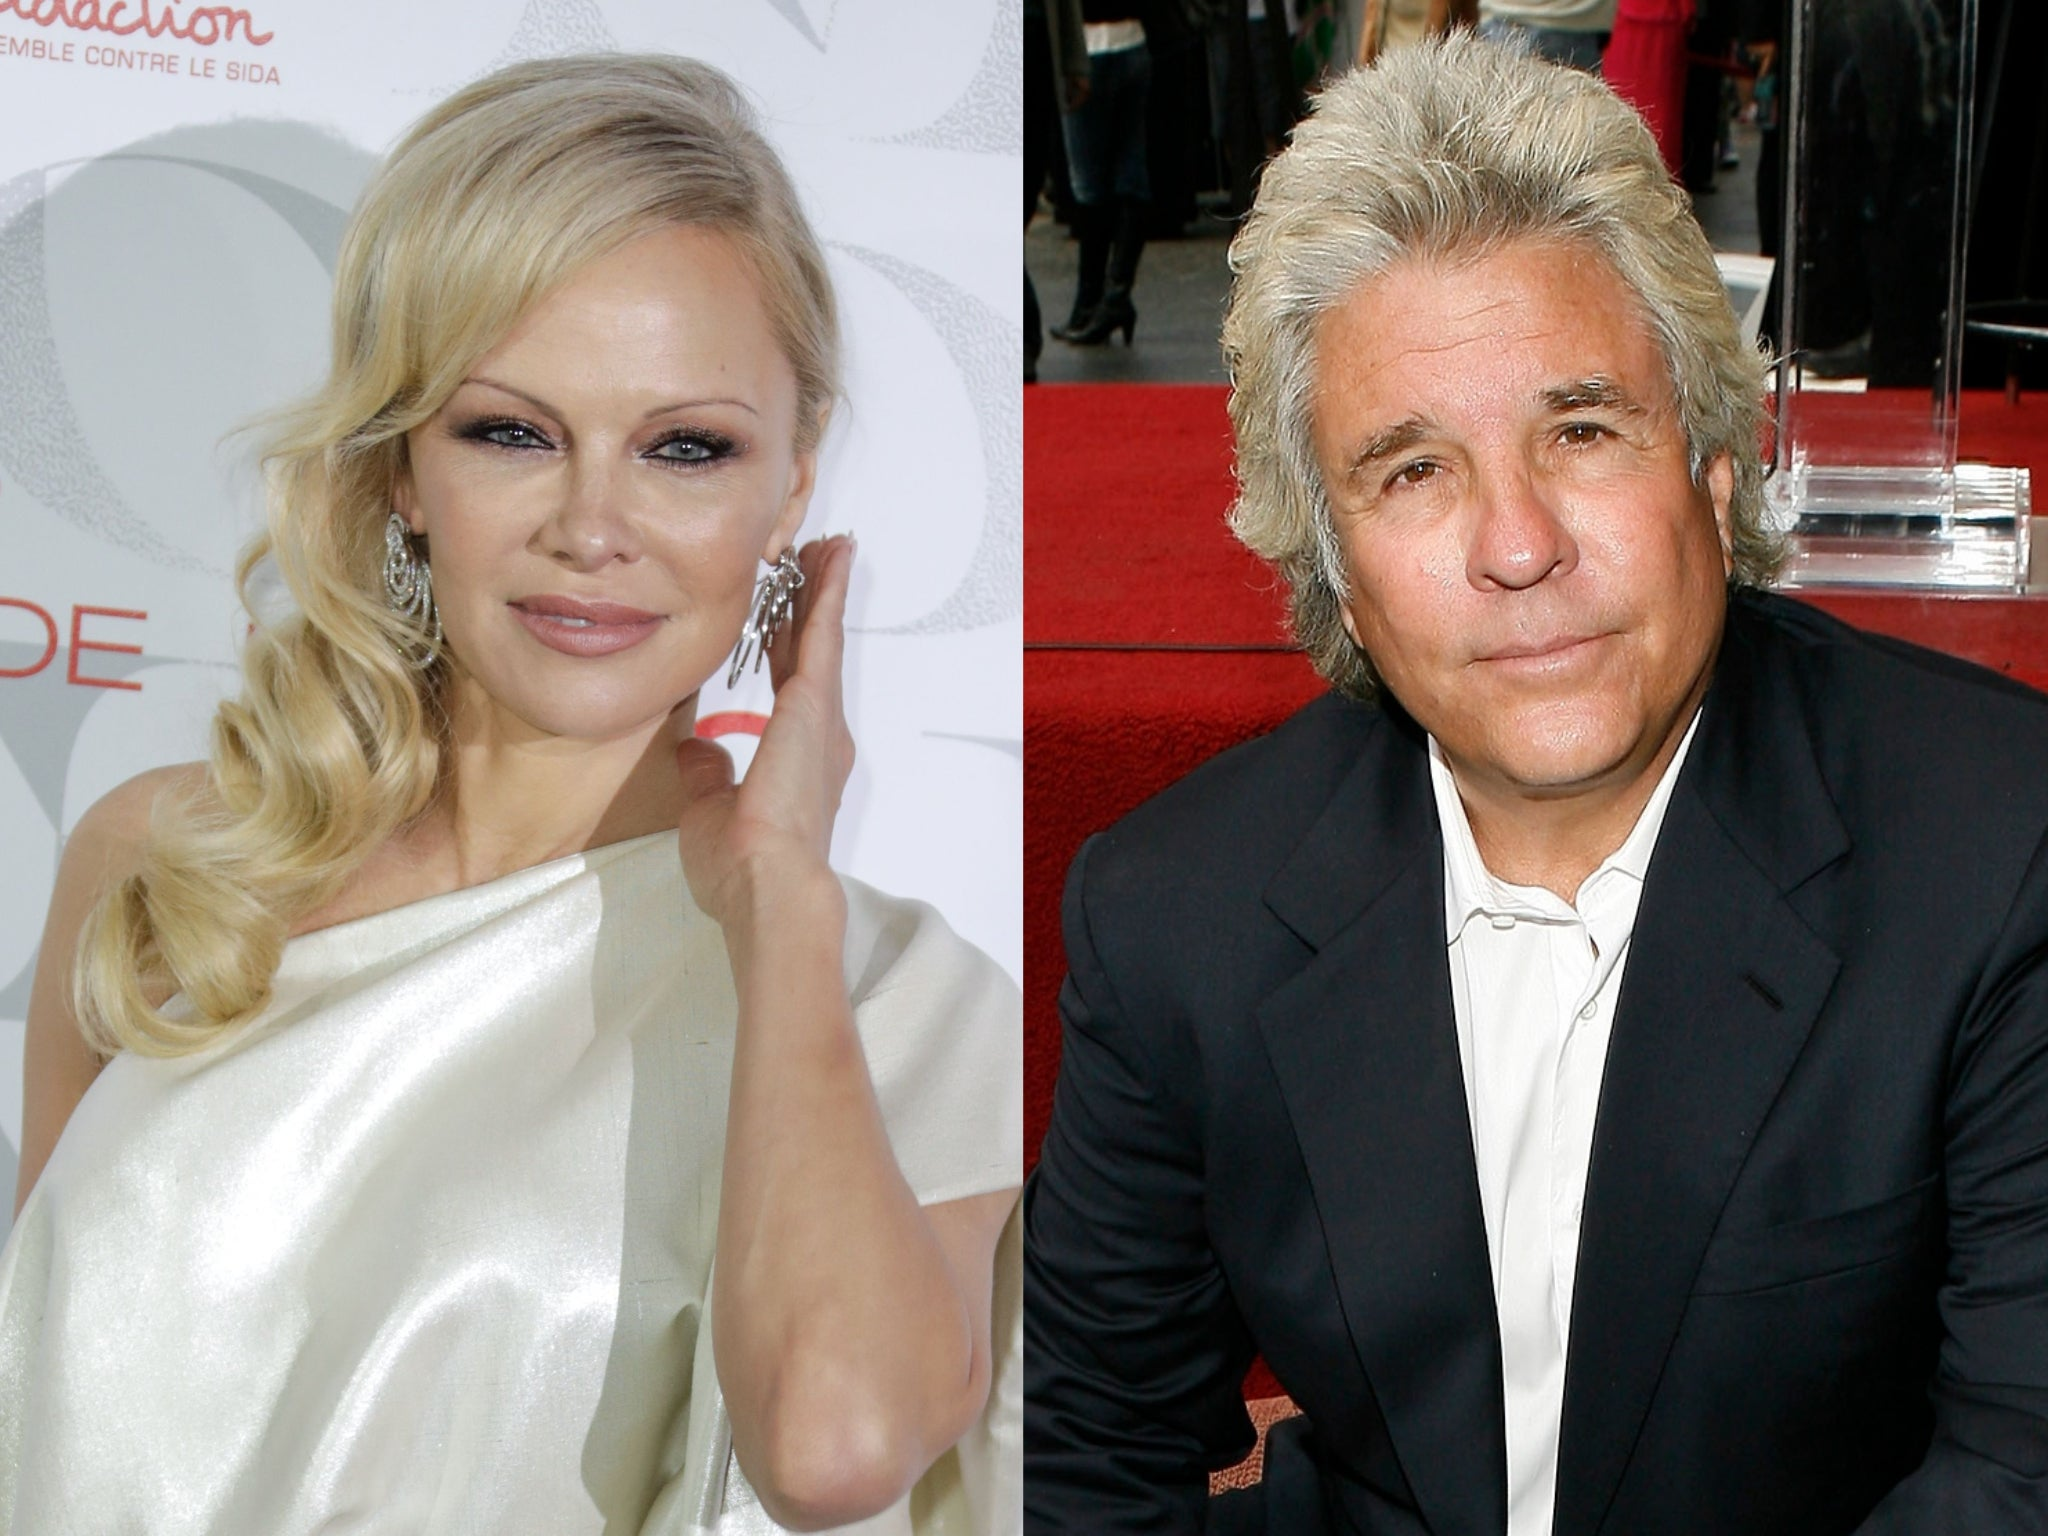 Pamela Anderson shares first photo with new husband Jon Peters since…